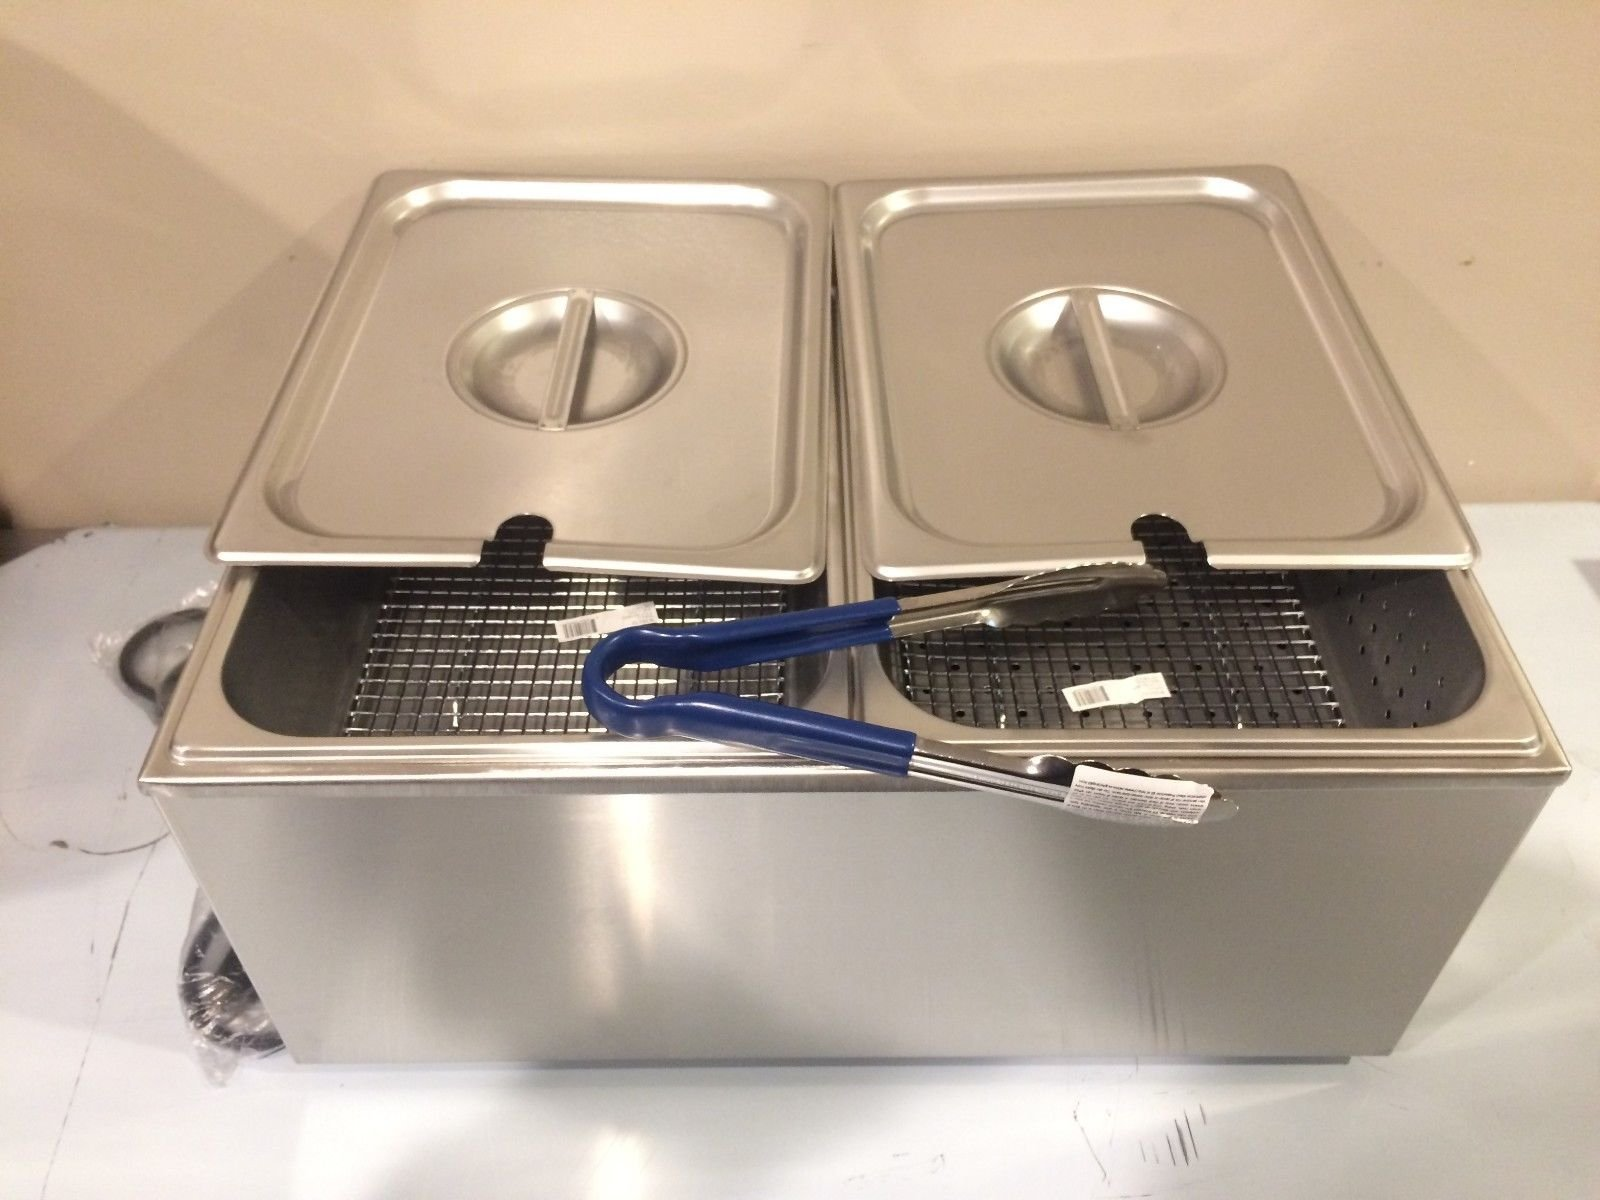 Commercial Table Counter Top Hot Dog Steamer & food Bun Warmer Cooker NSF Approved! ETL Listed